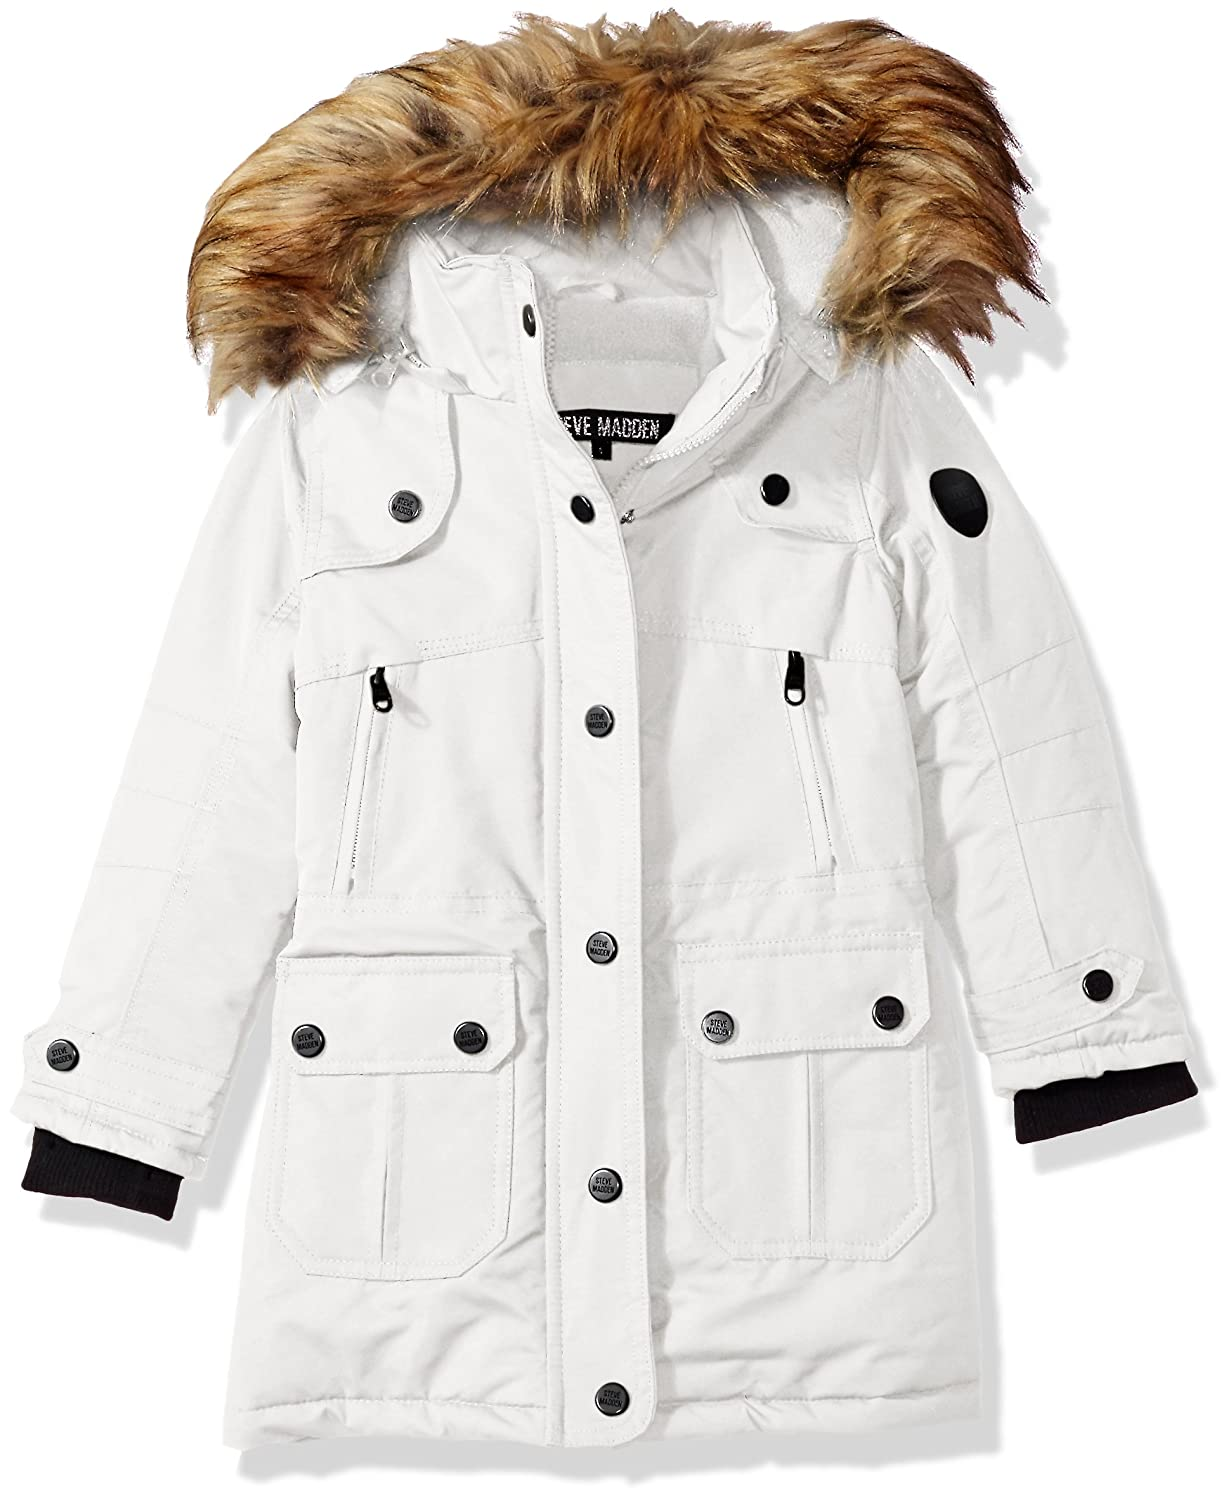 Steve Madden Girls' Outerwear Jacket (More Styles Available)